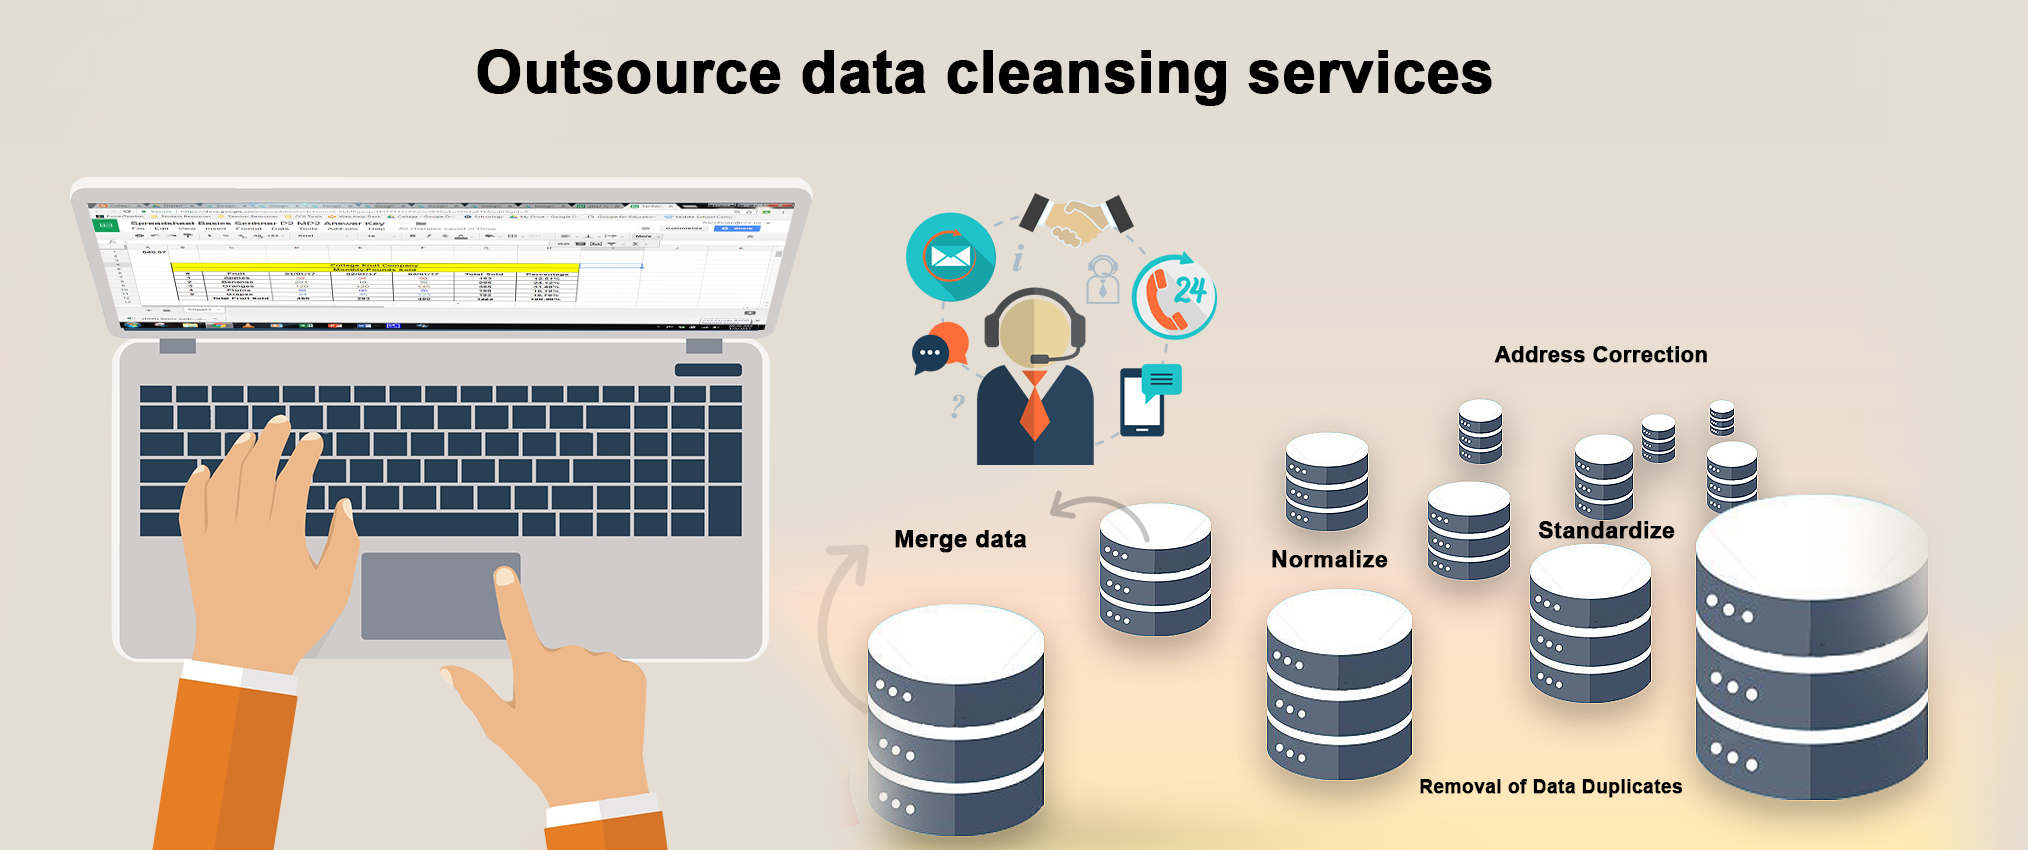 outsource-data-cleansing-service-to-improve-data-quality